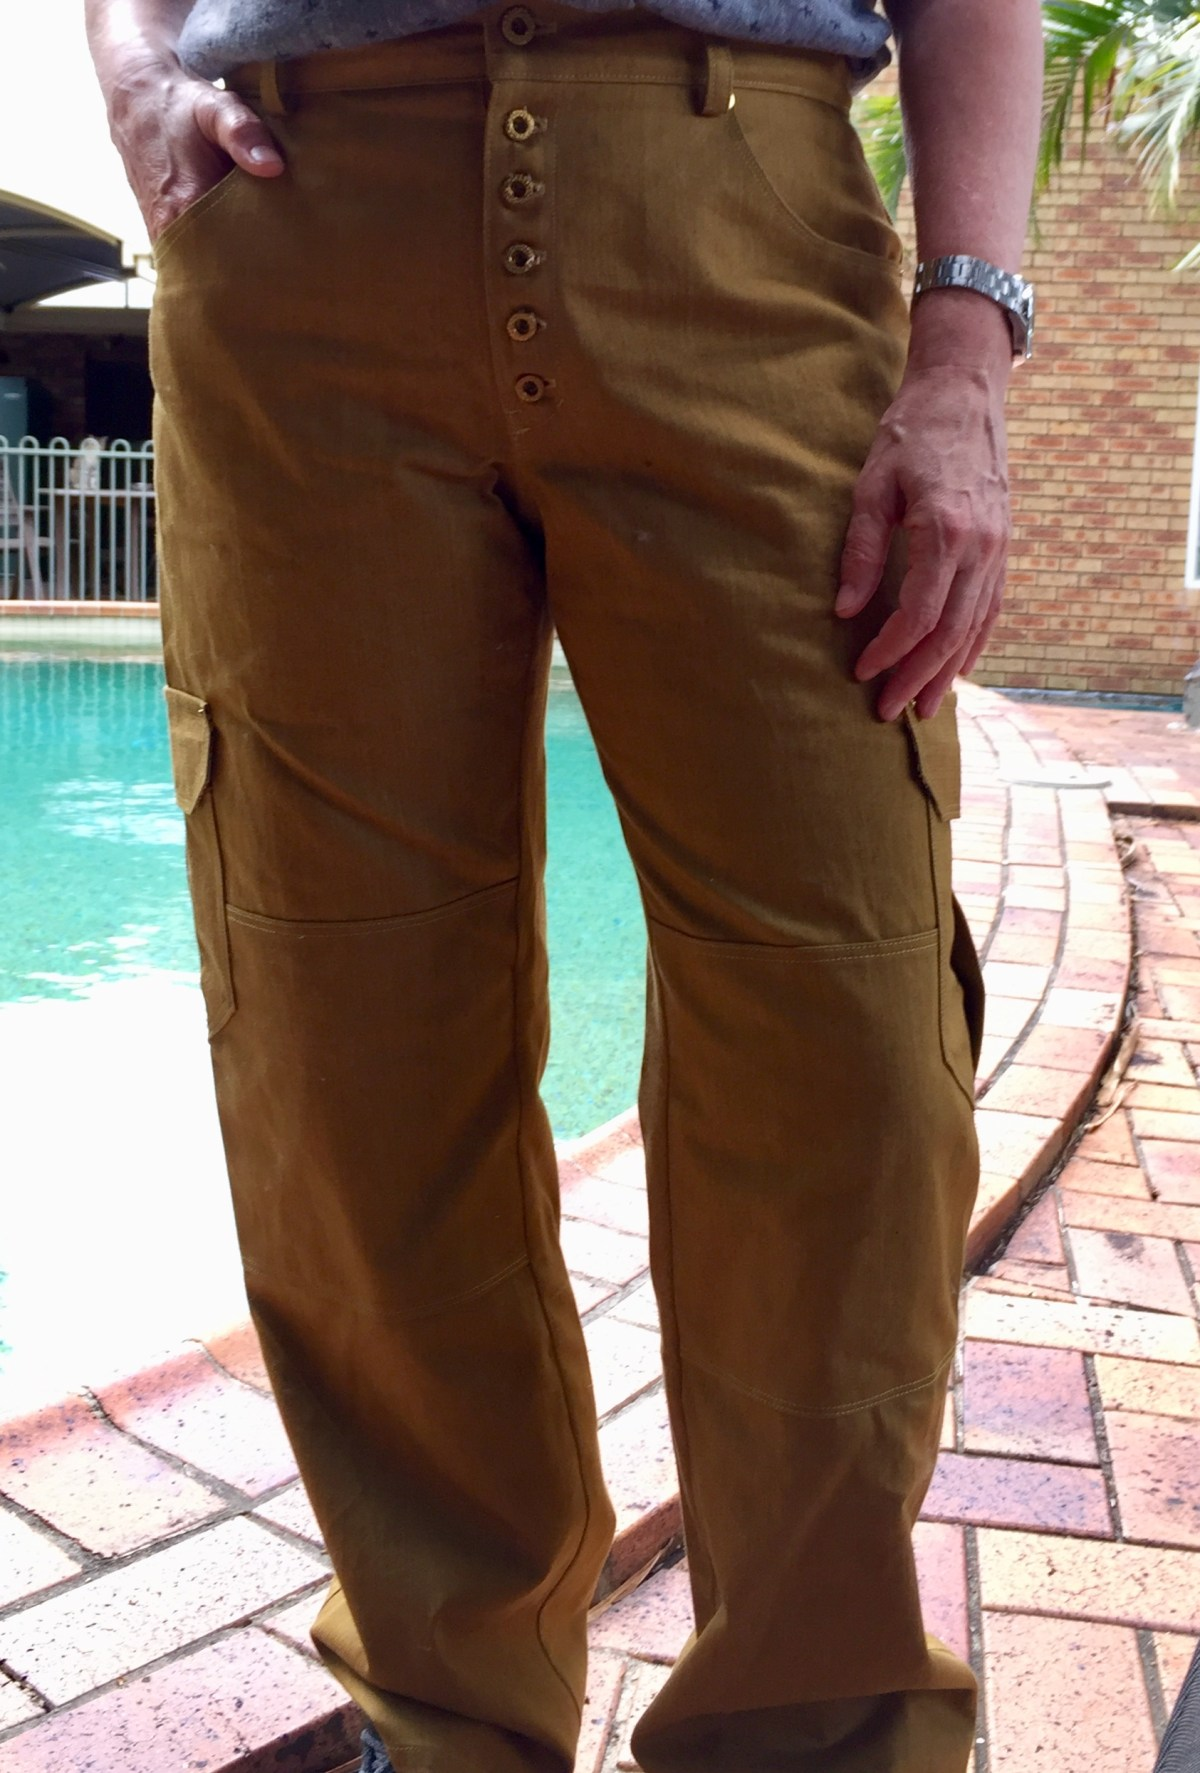 Front view of the author wearing the trousers, with brassy buttons down the fly